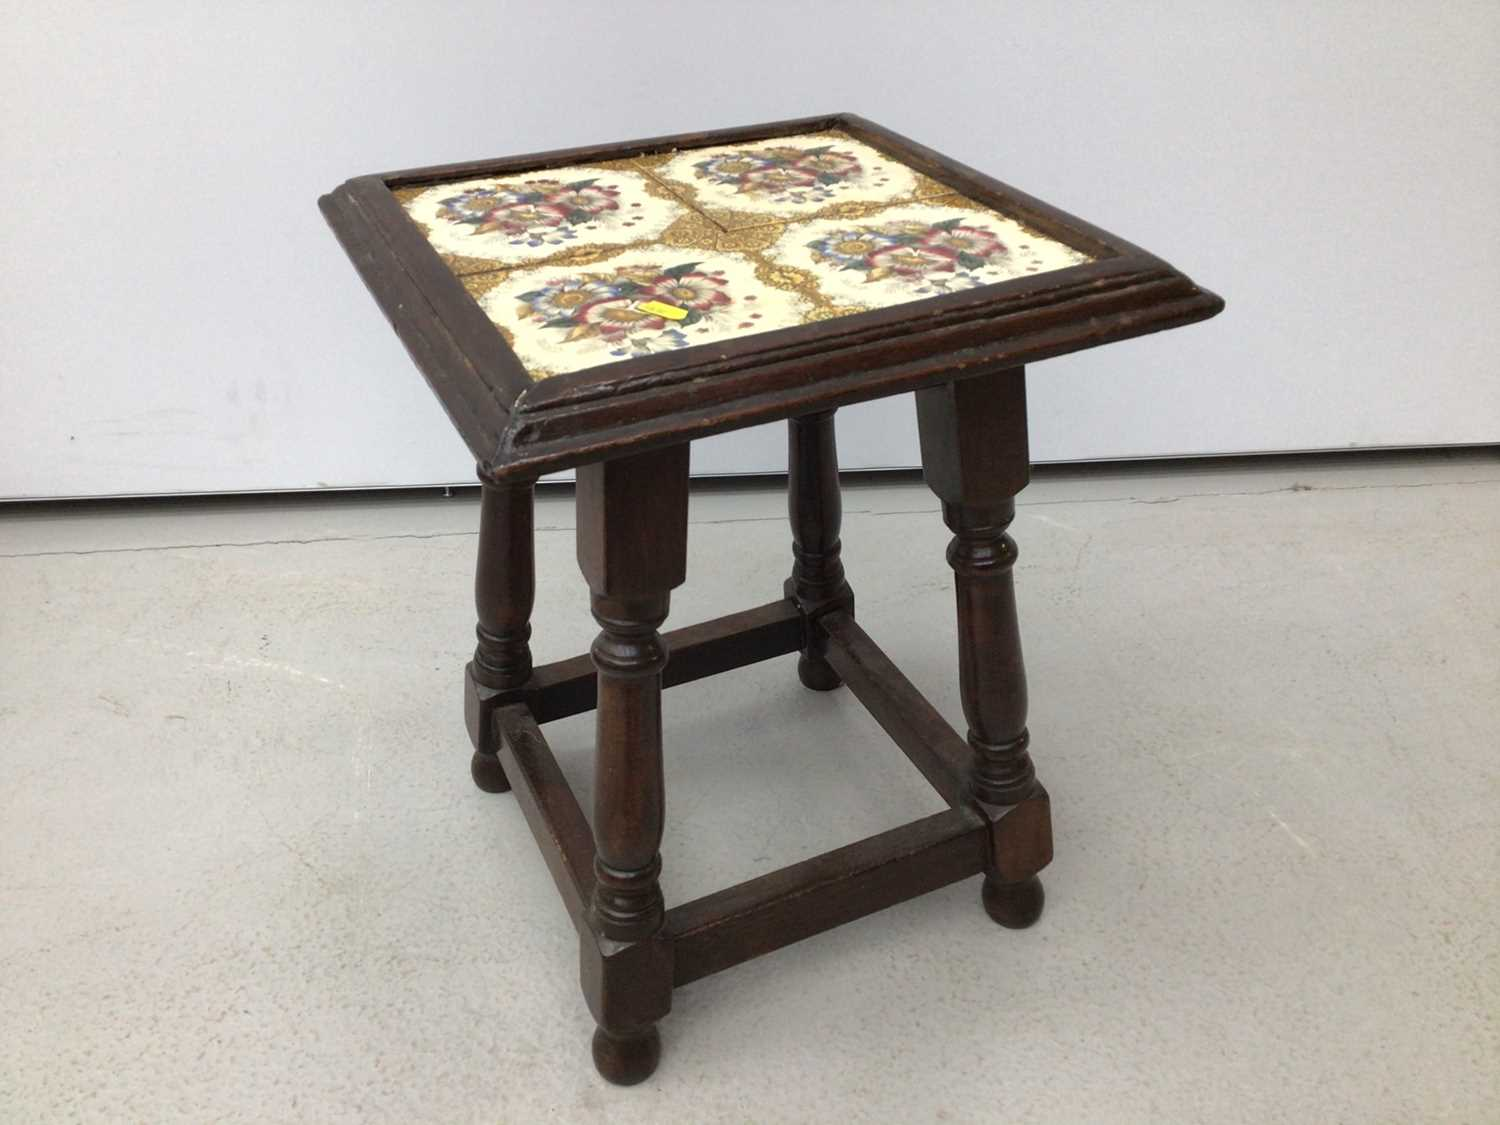 Victorian mahogany piano stool with blue upholstered seat on tripod base and a tiled top table and a - Image 8 of 13